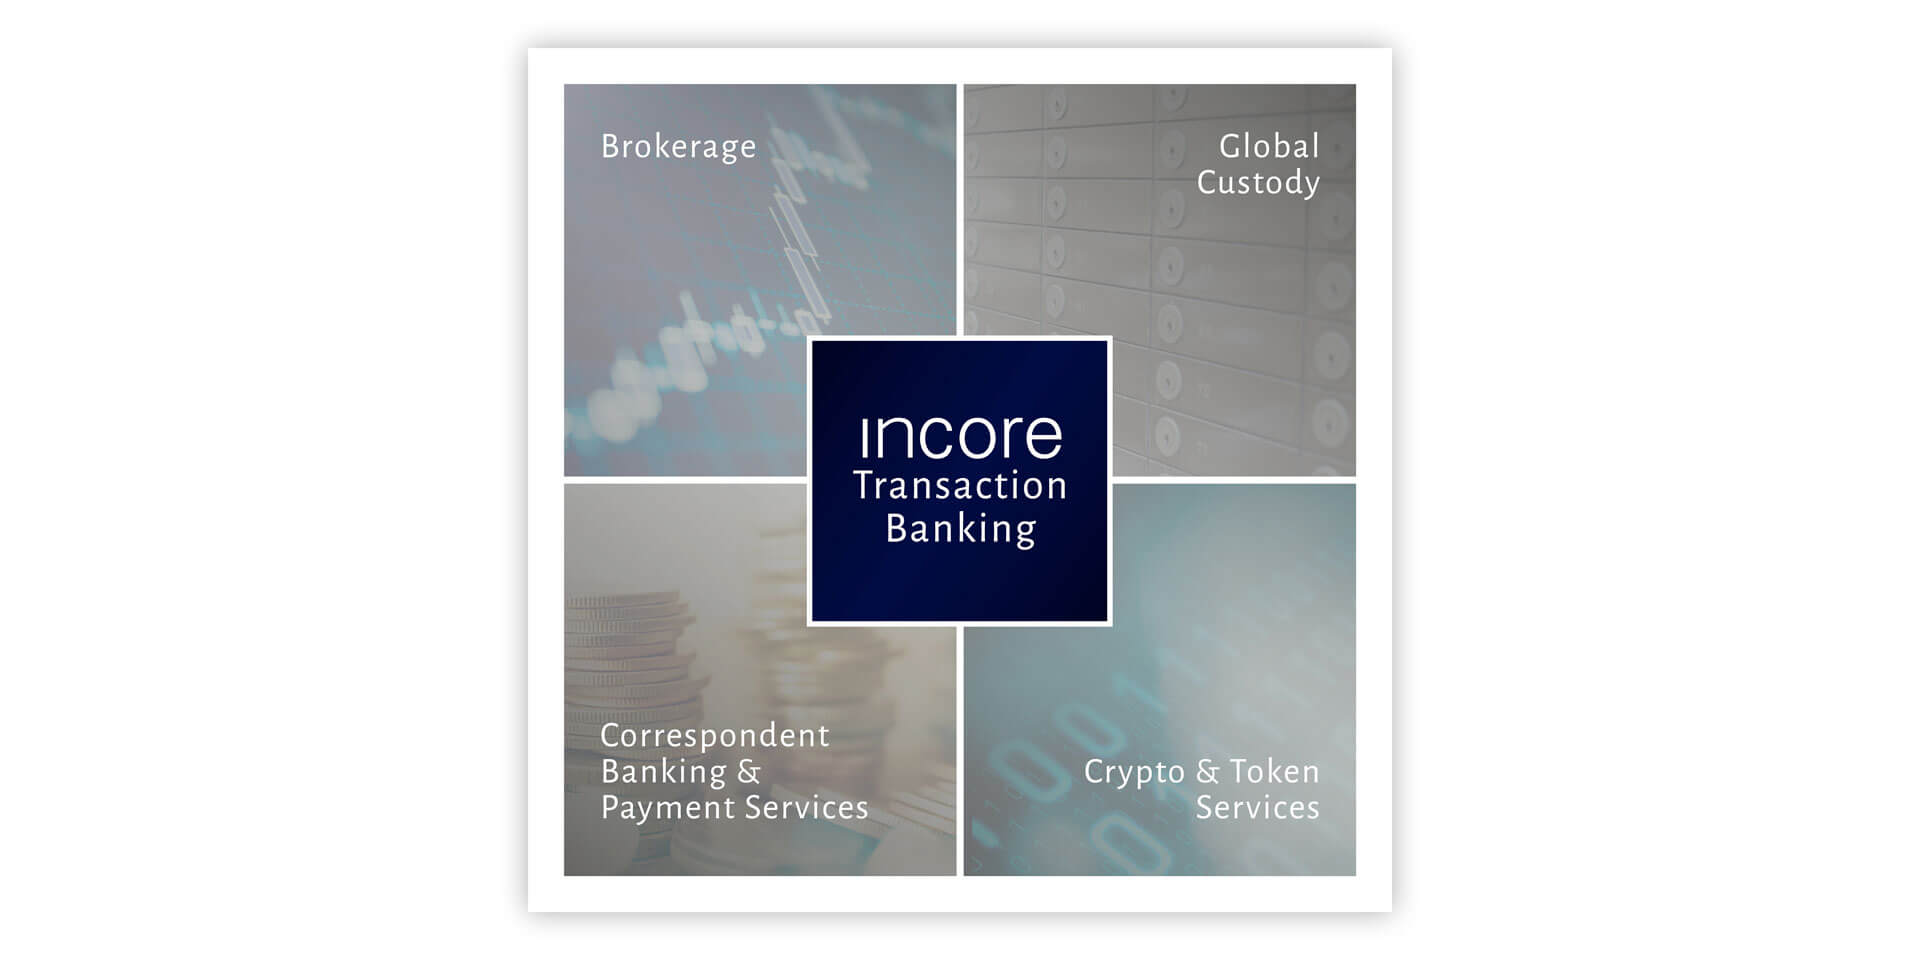 InCore Transaction Banking